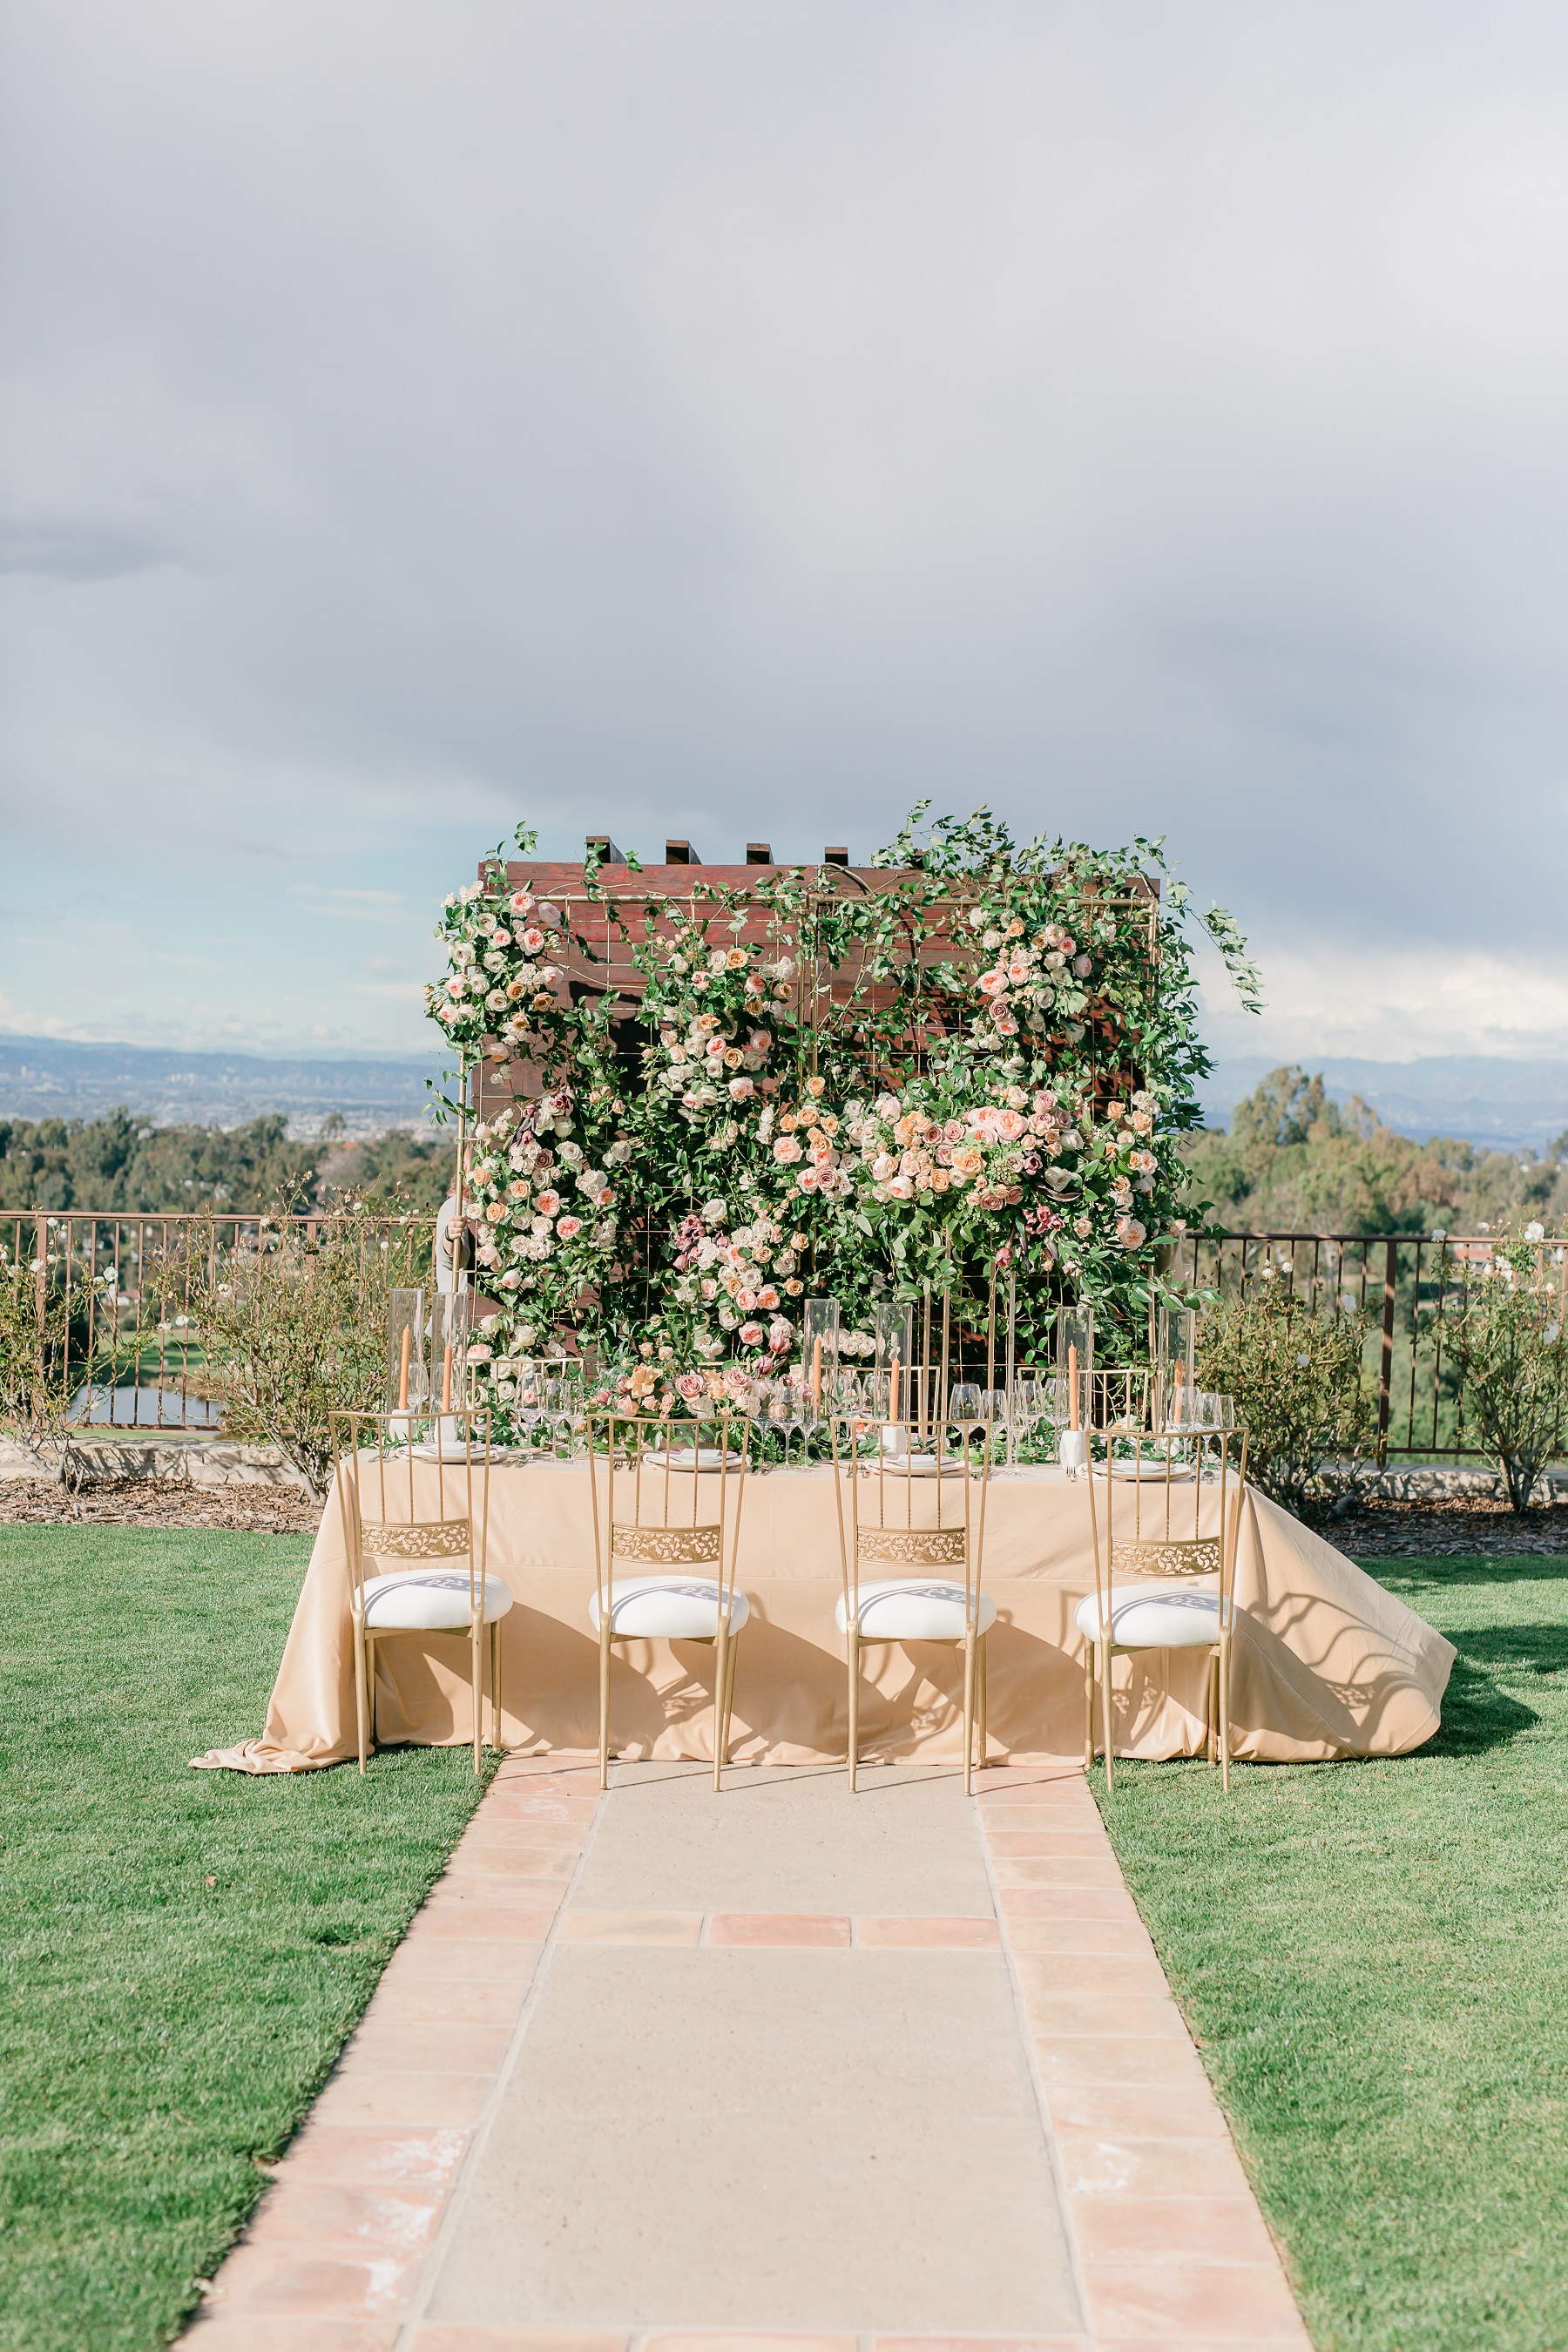 Chameleon Chair Collection Palos Verdes Styled Shoot